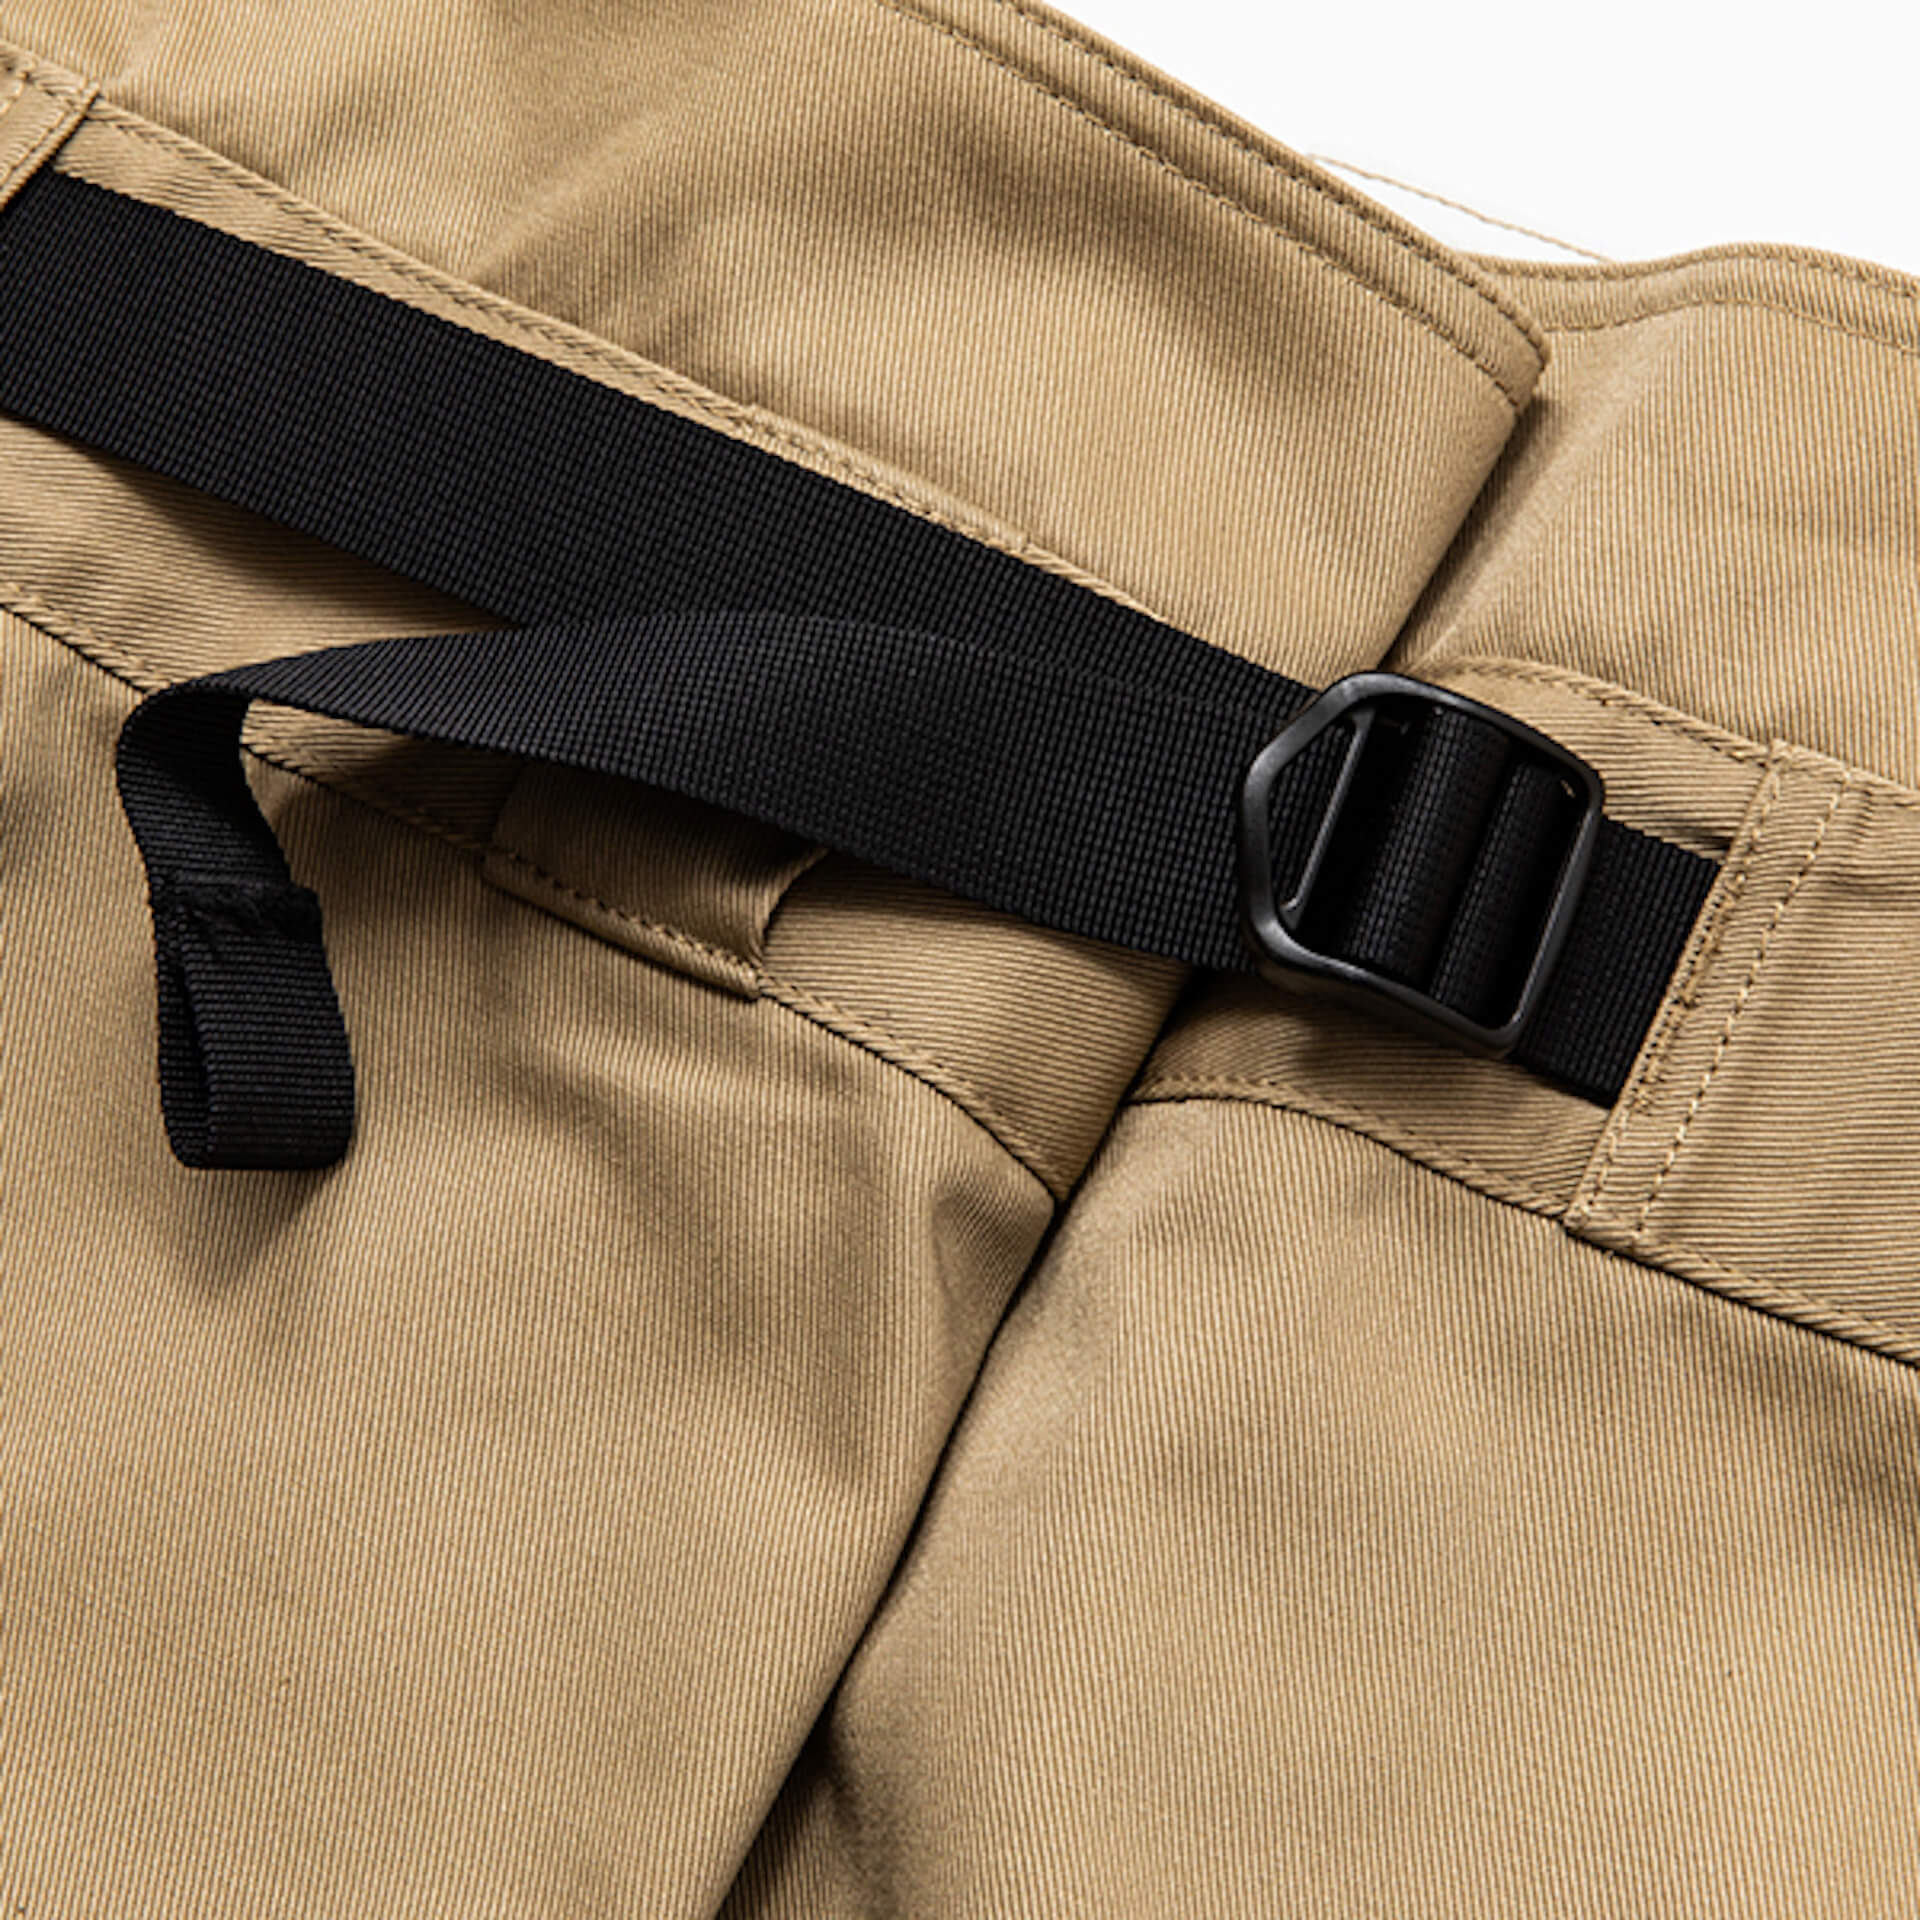 meanswhileとDickiesコラボ第2弾!定番素材を使用したセットアップが登場 life_fashion210901_meanswhile_11_0